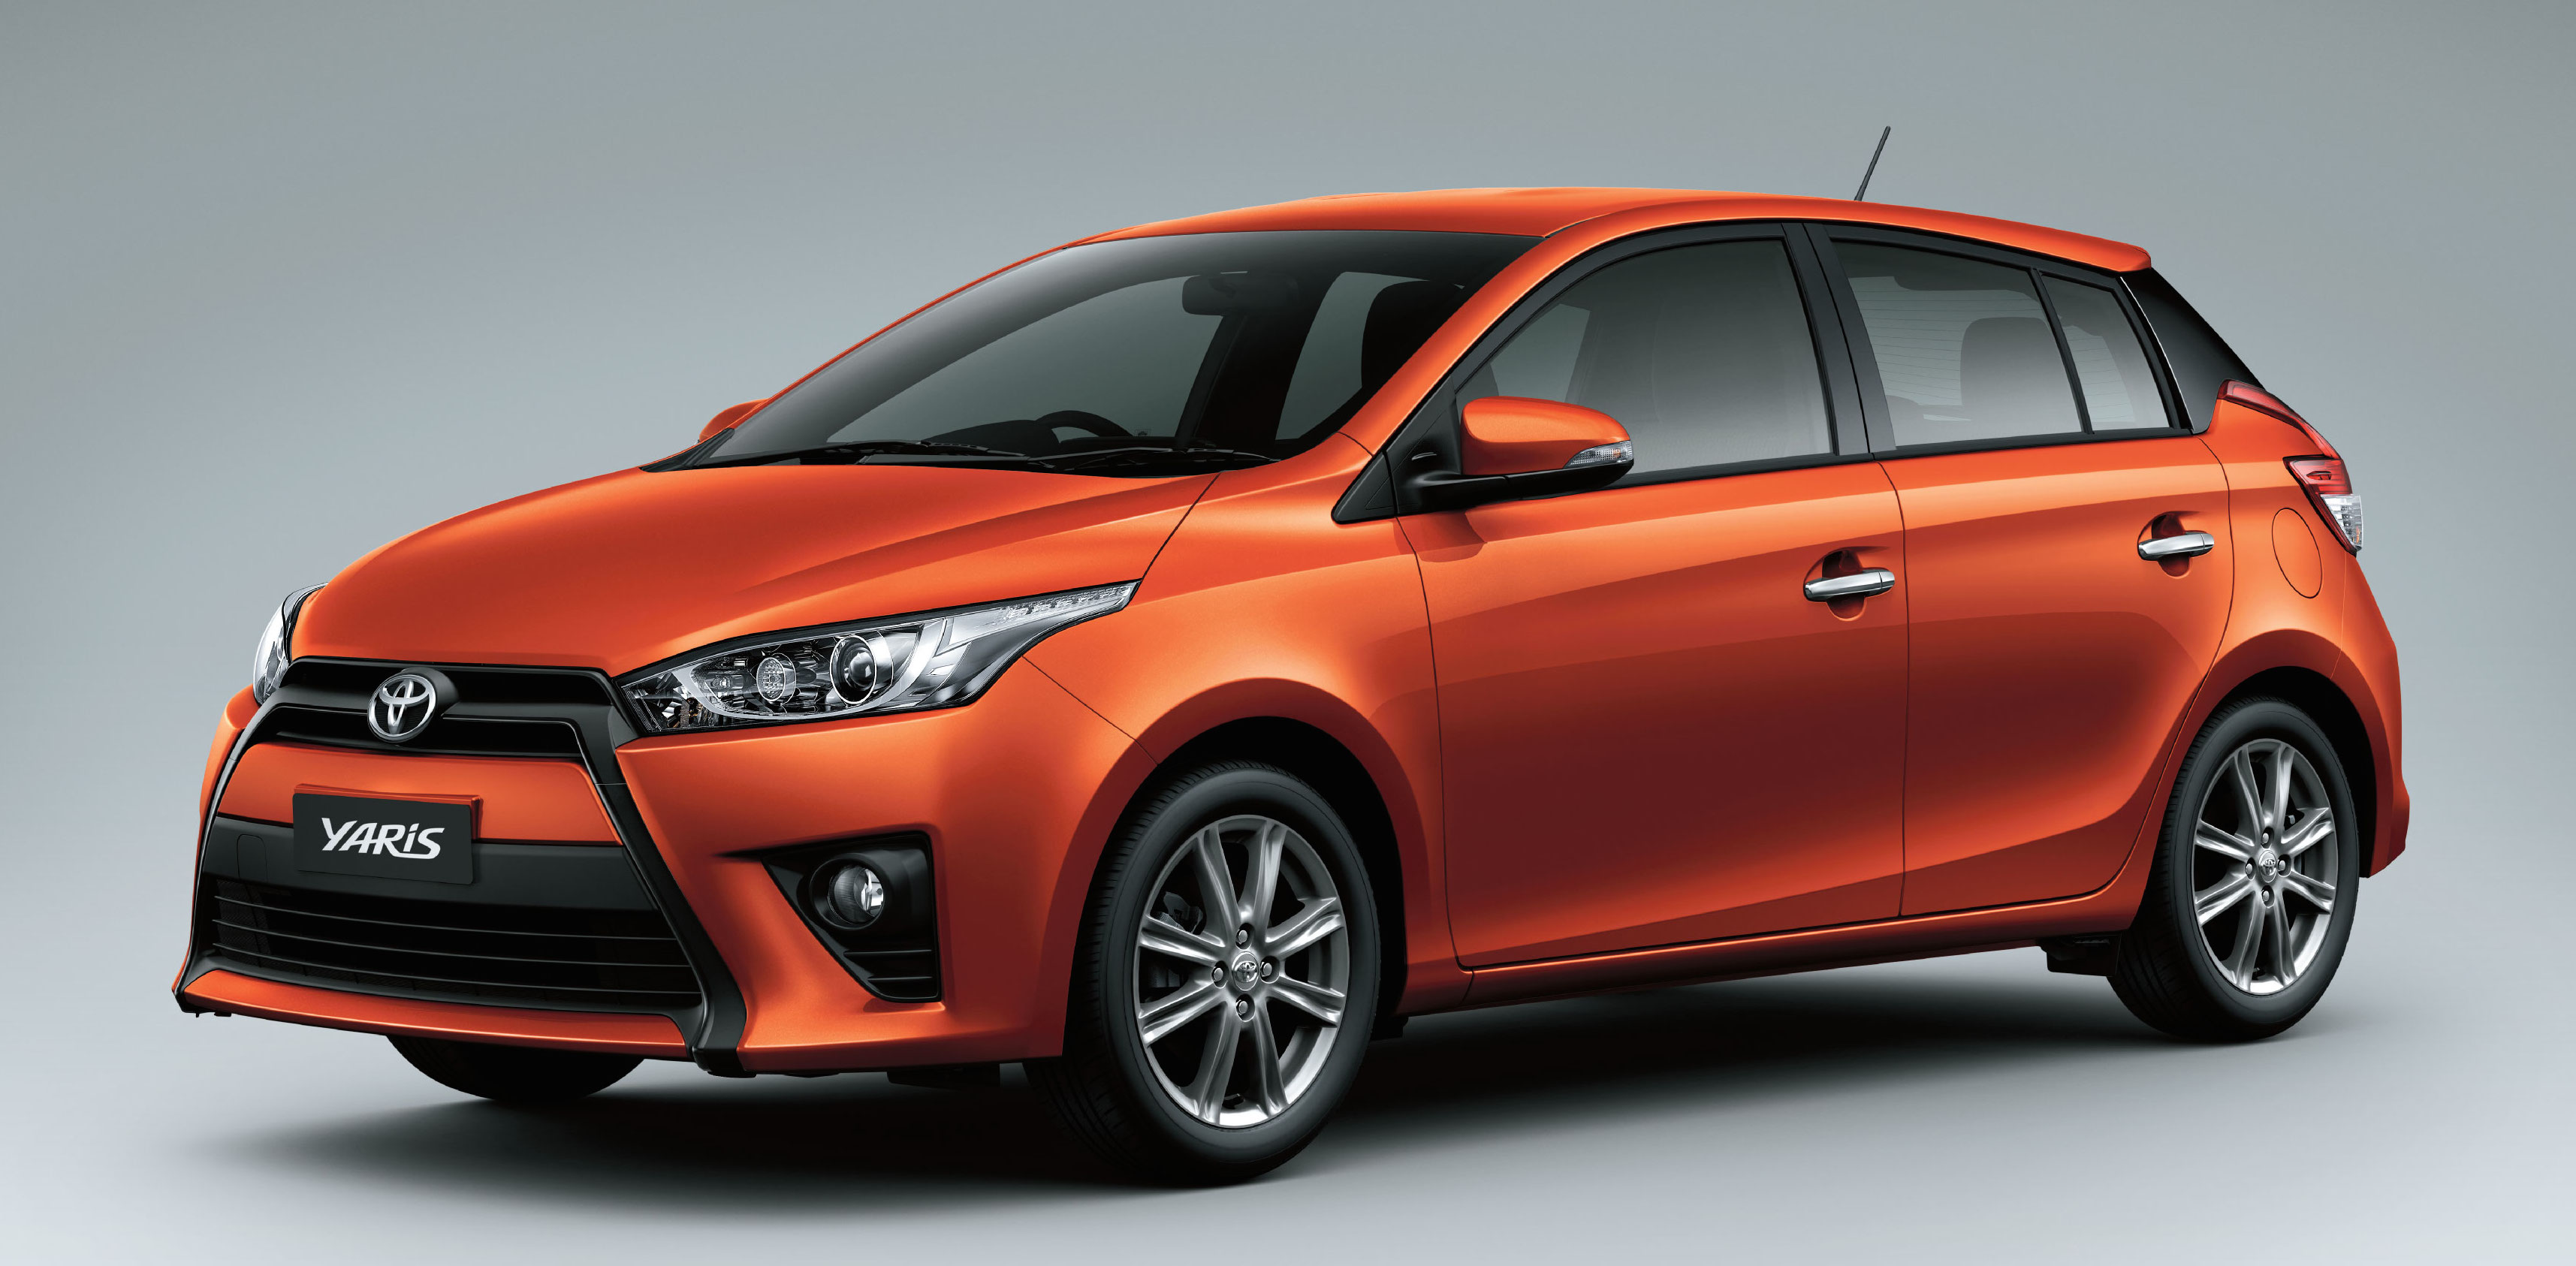 2014 Toyota Yaris - new M'sian-spec details released